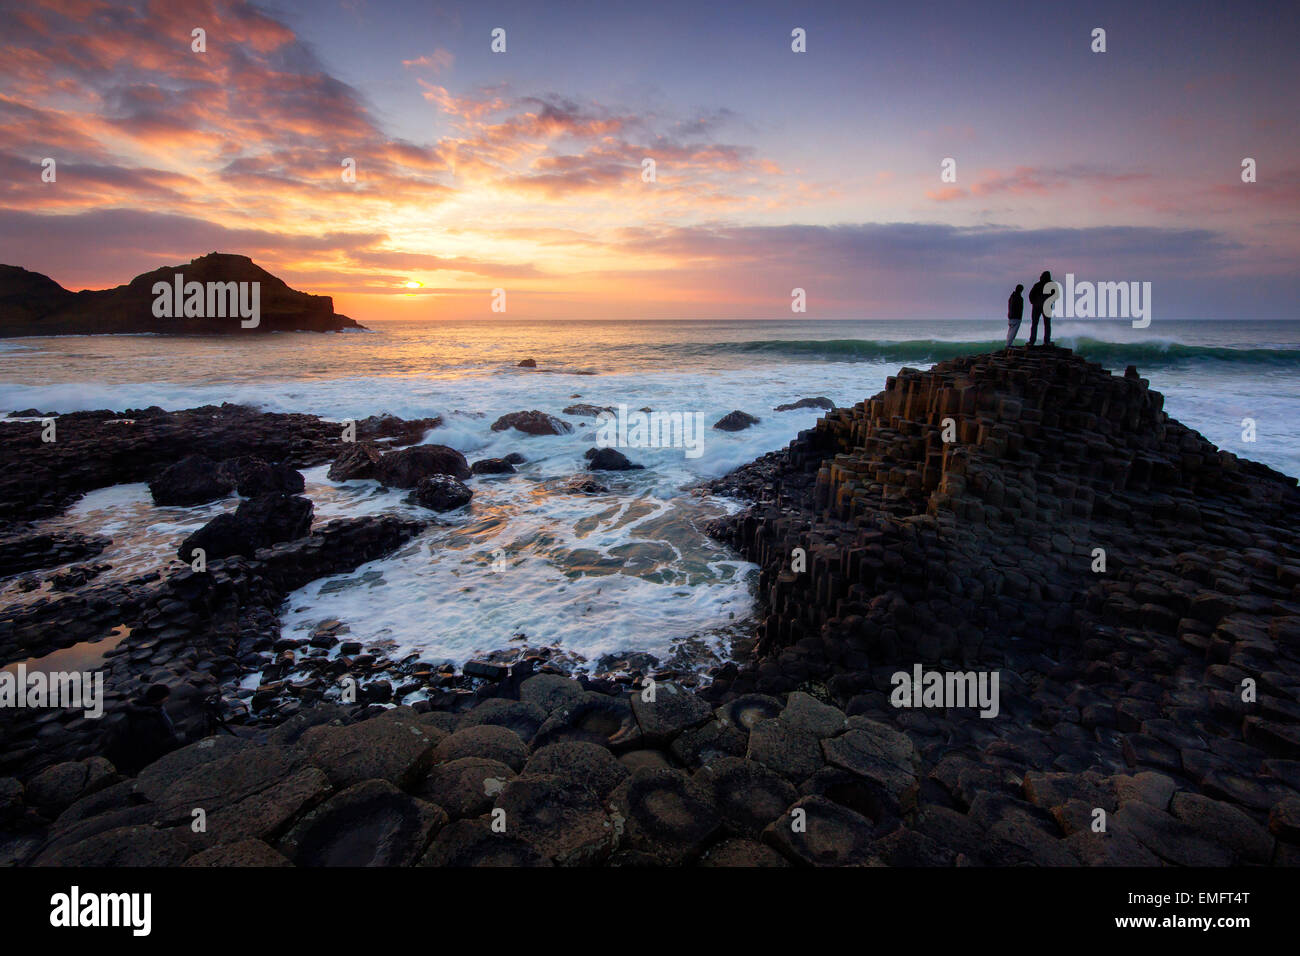 Tourists watching a sunset at the Giant's Causeway - Stock Image